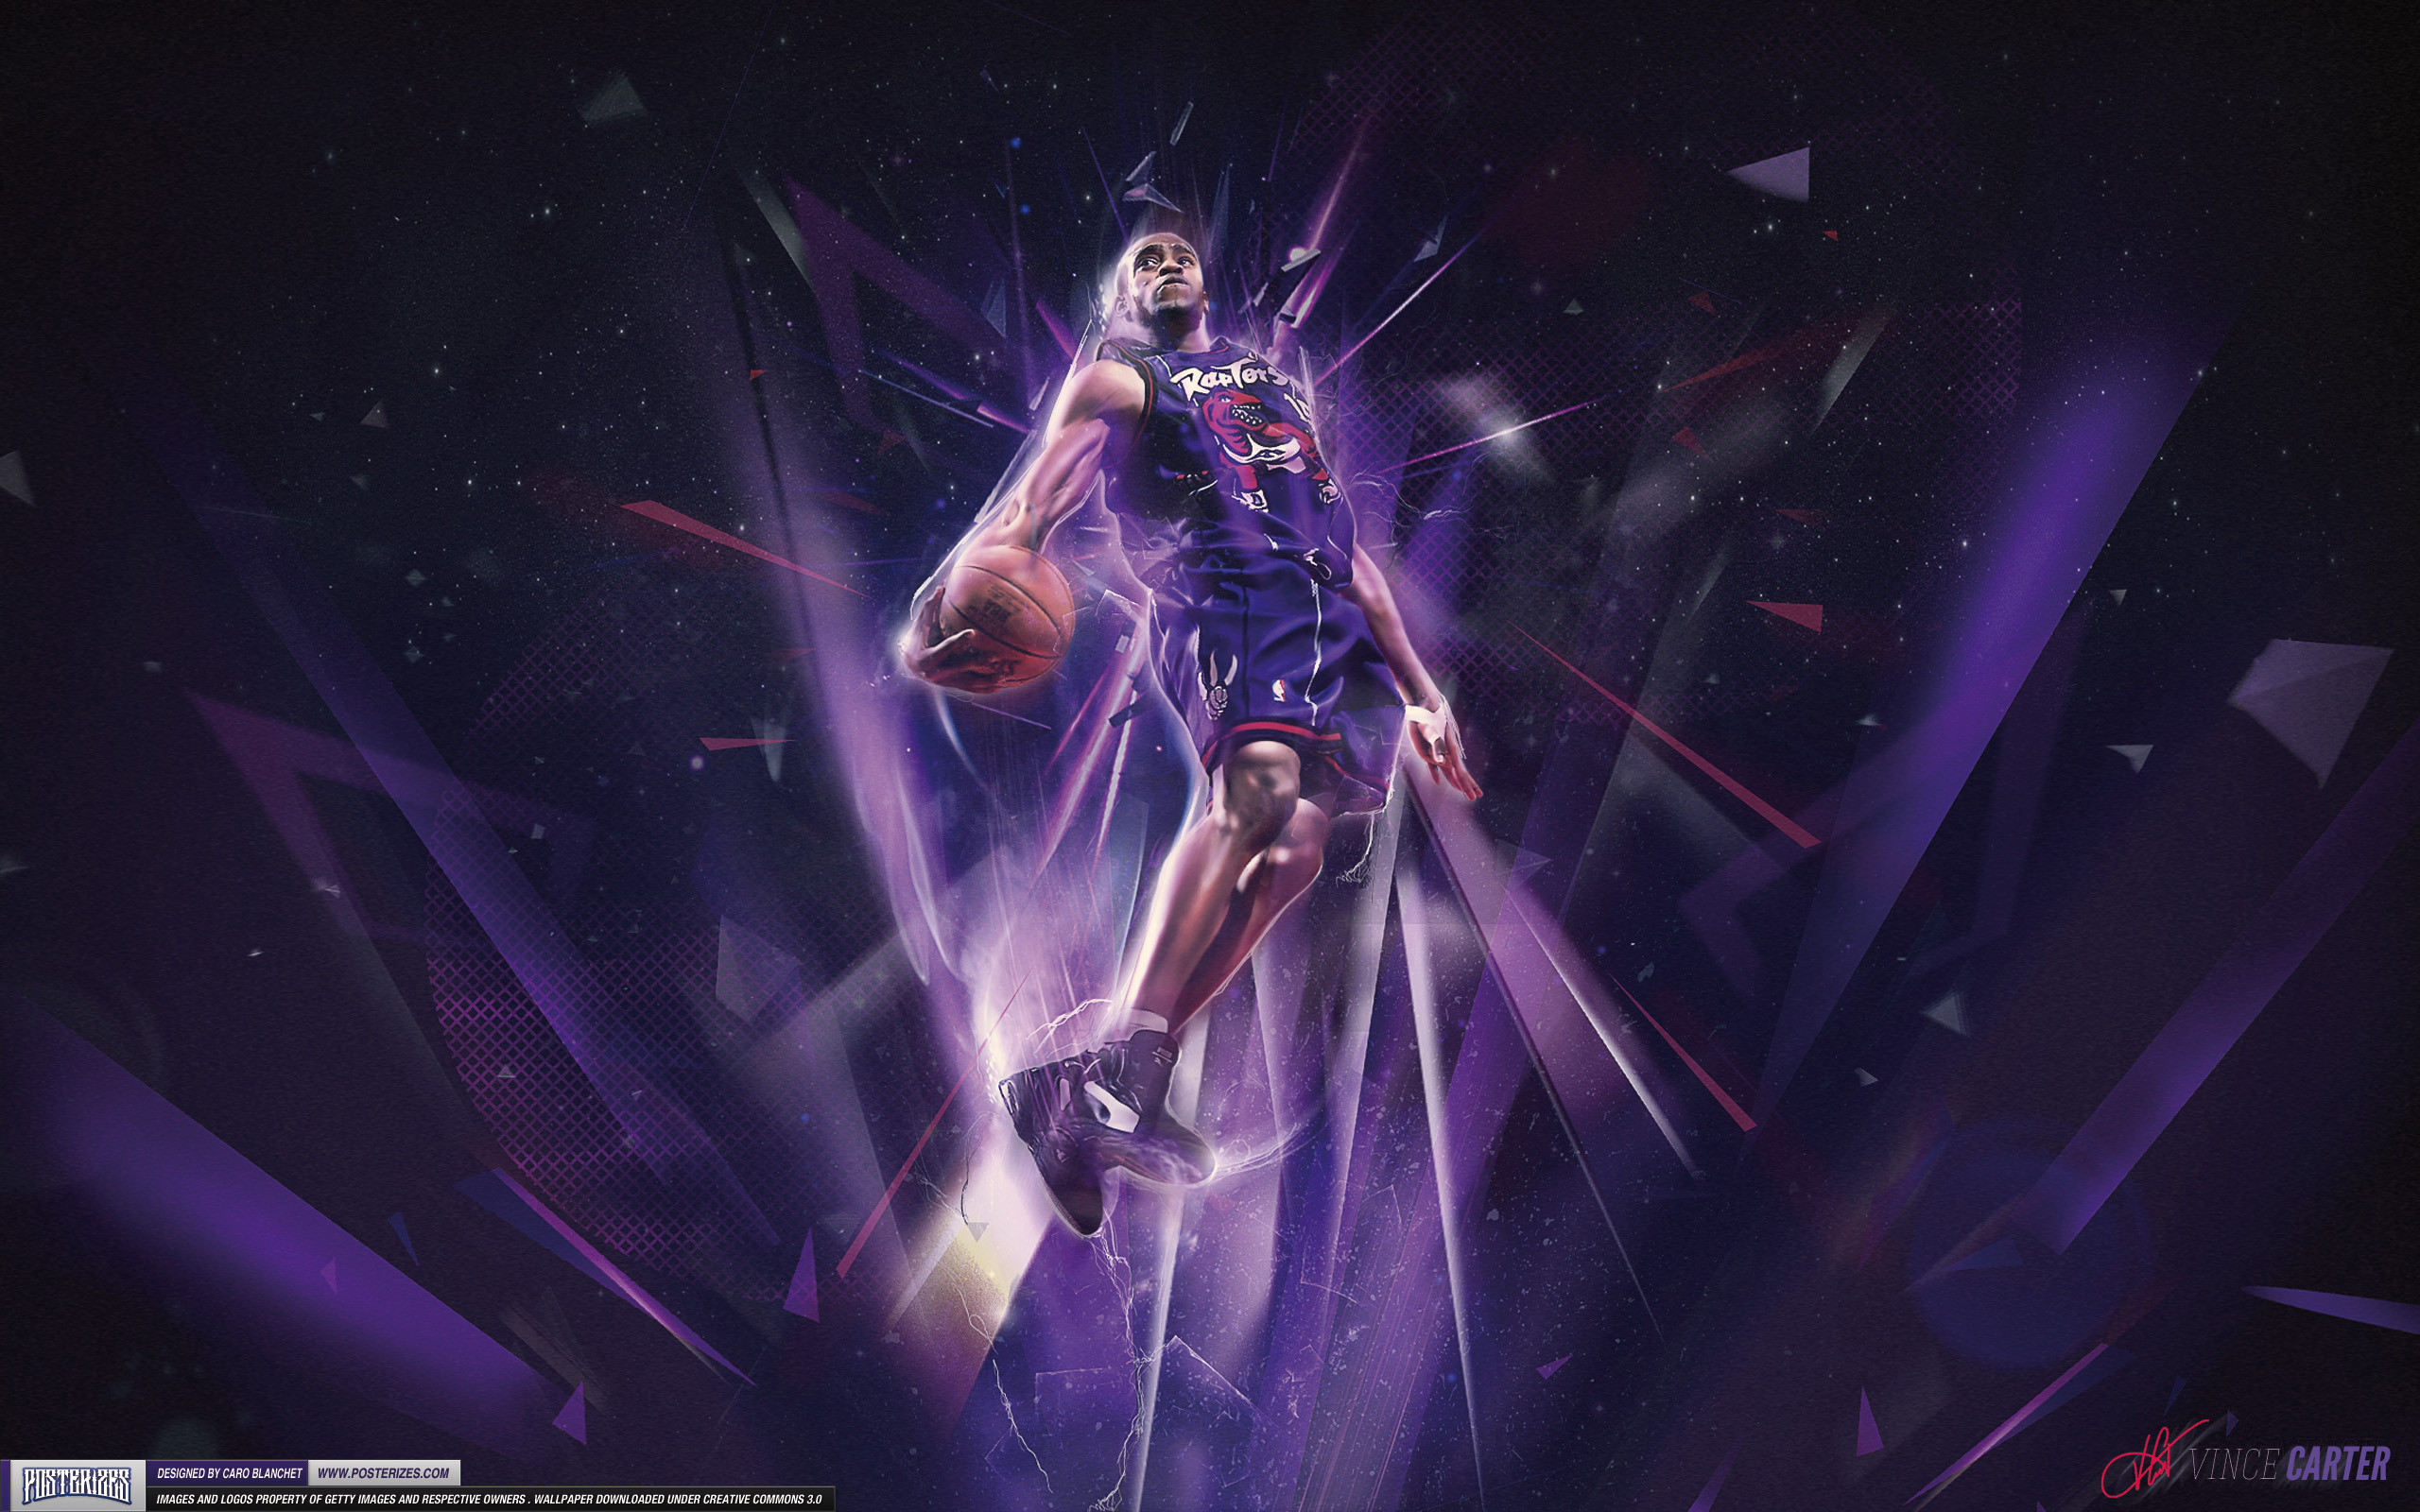 2560x1600 Vince Carter – 'Dunk Contest' (WALLPAPER)